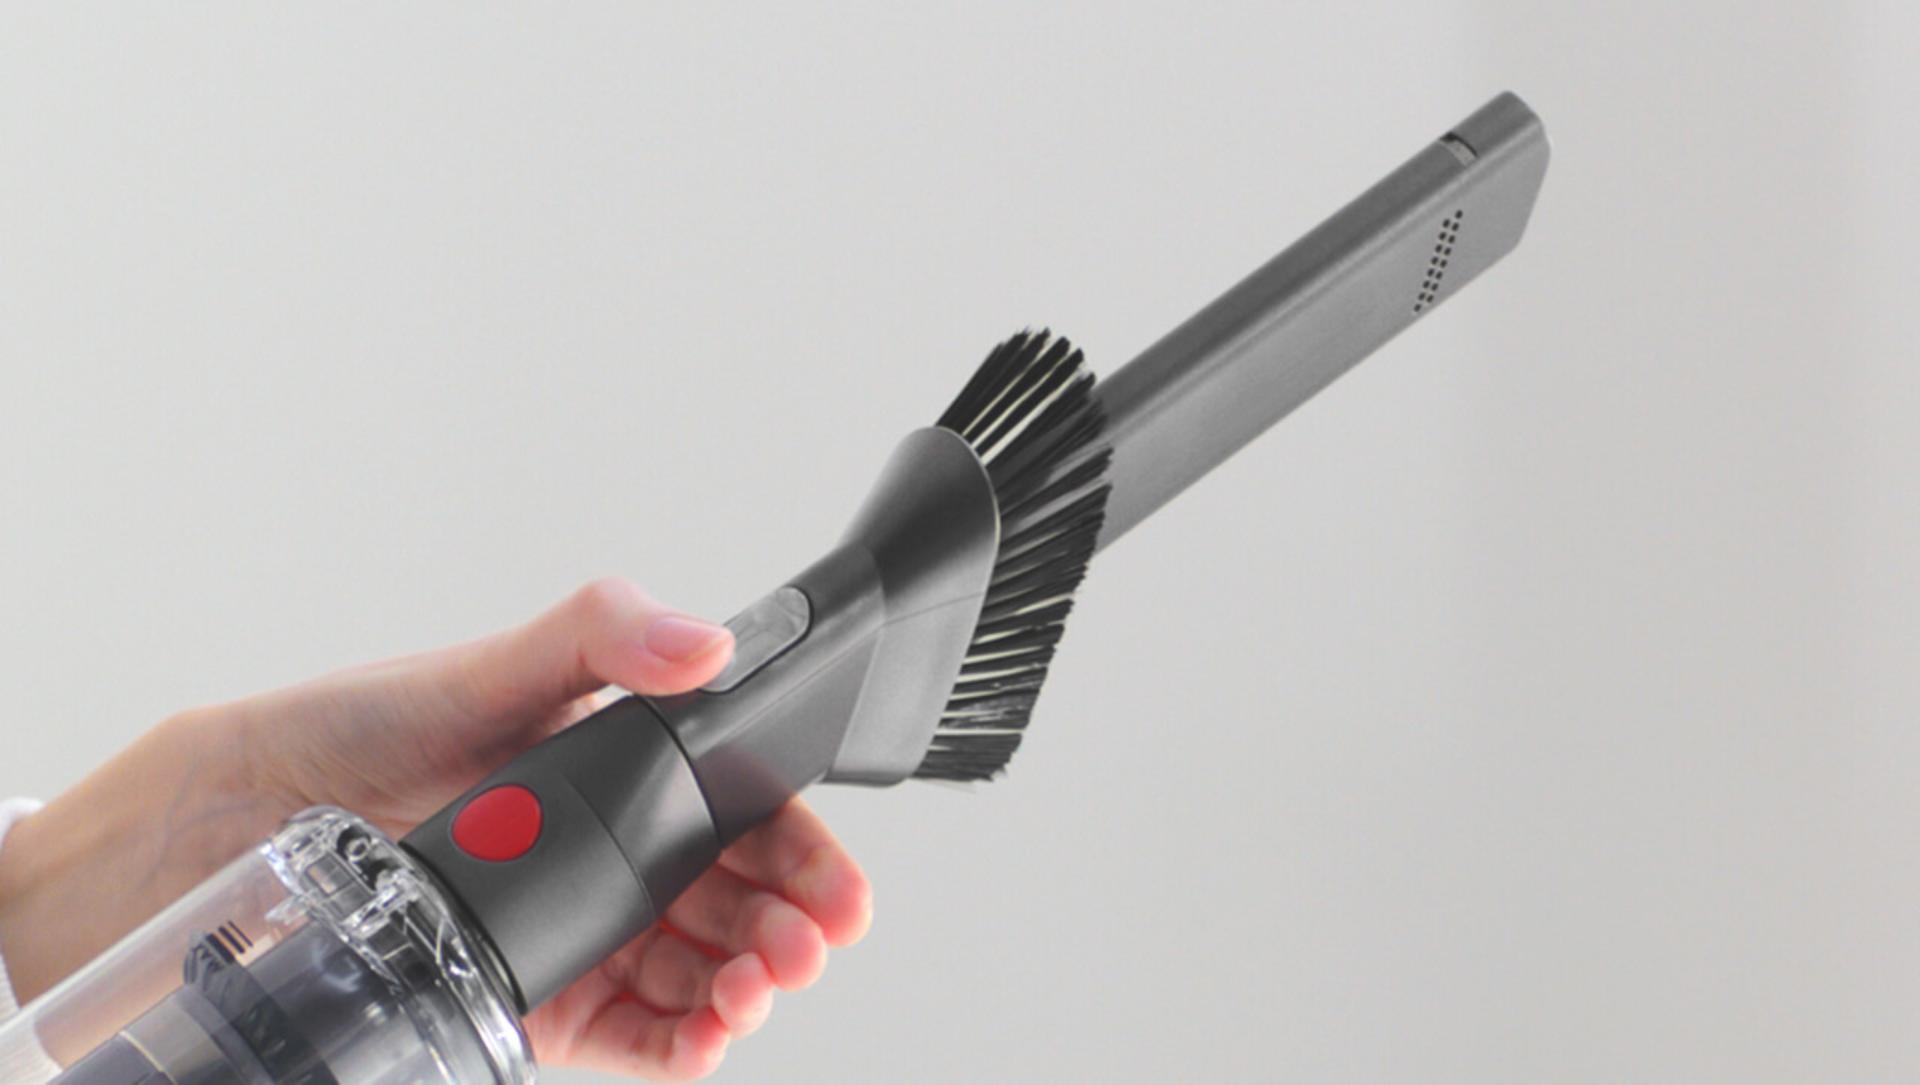 Combination tool showing crevice pipe and brush.